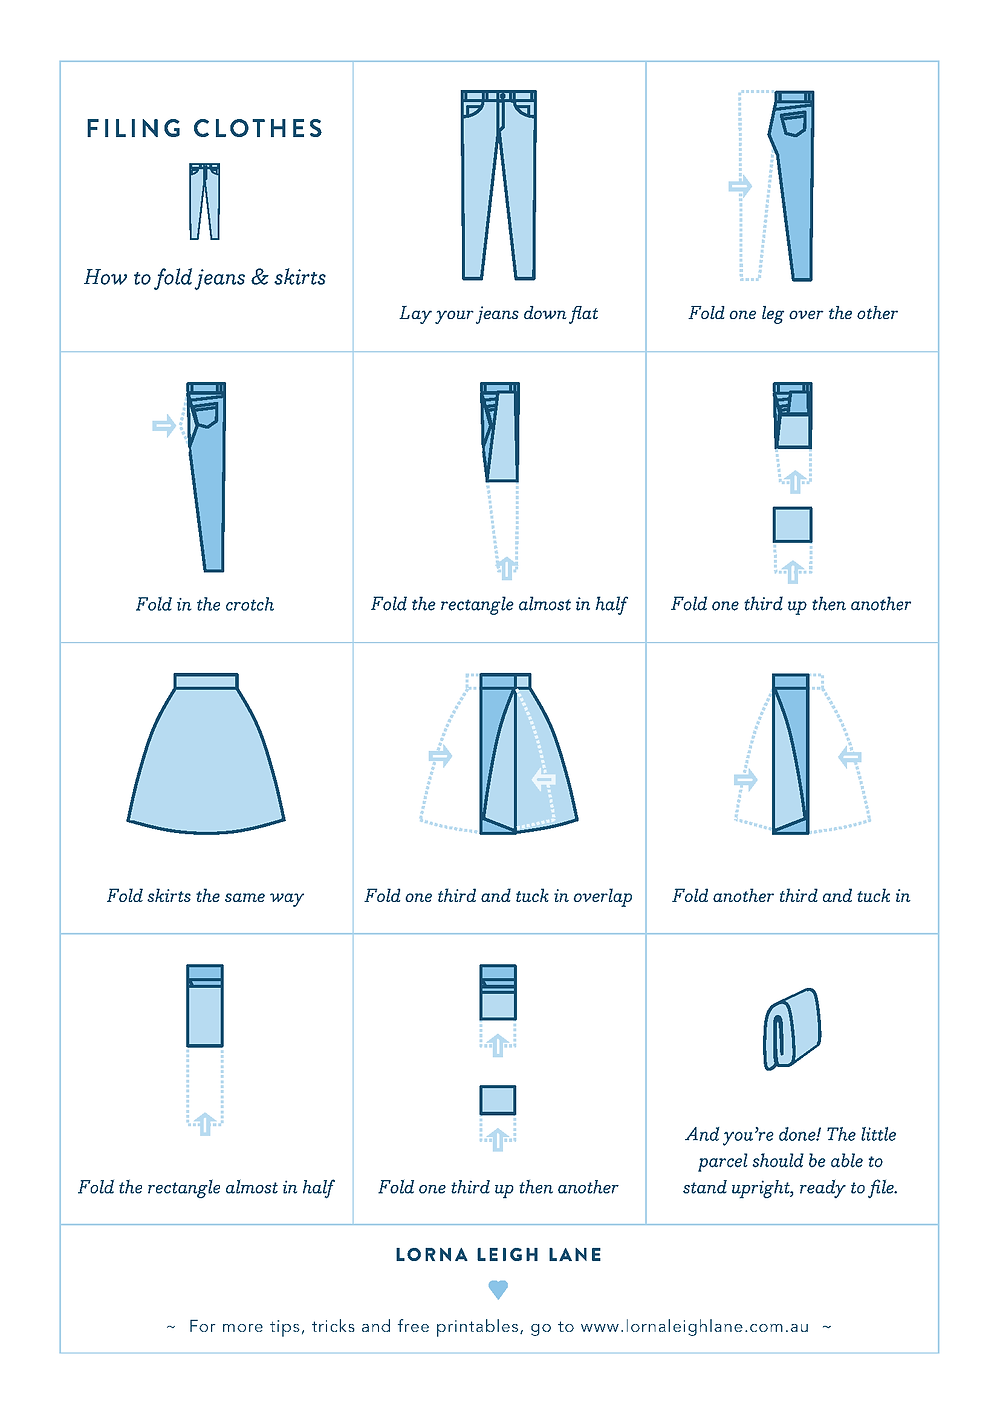 How to fold jeans and skirts like Marie Kondo